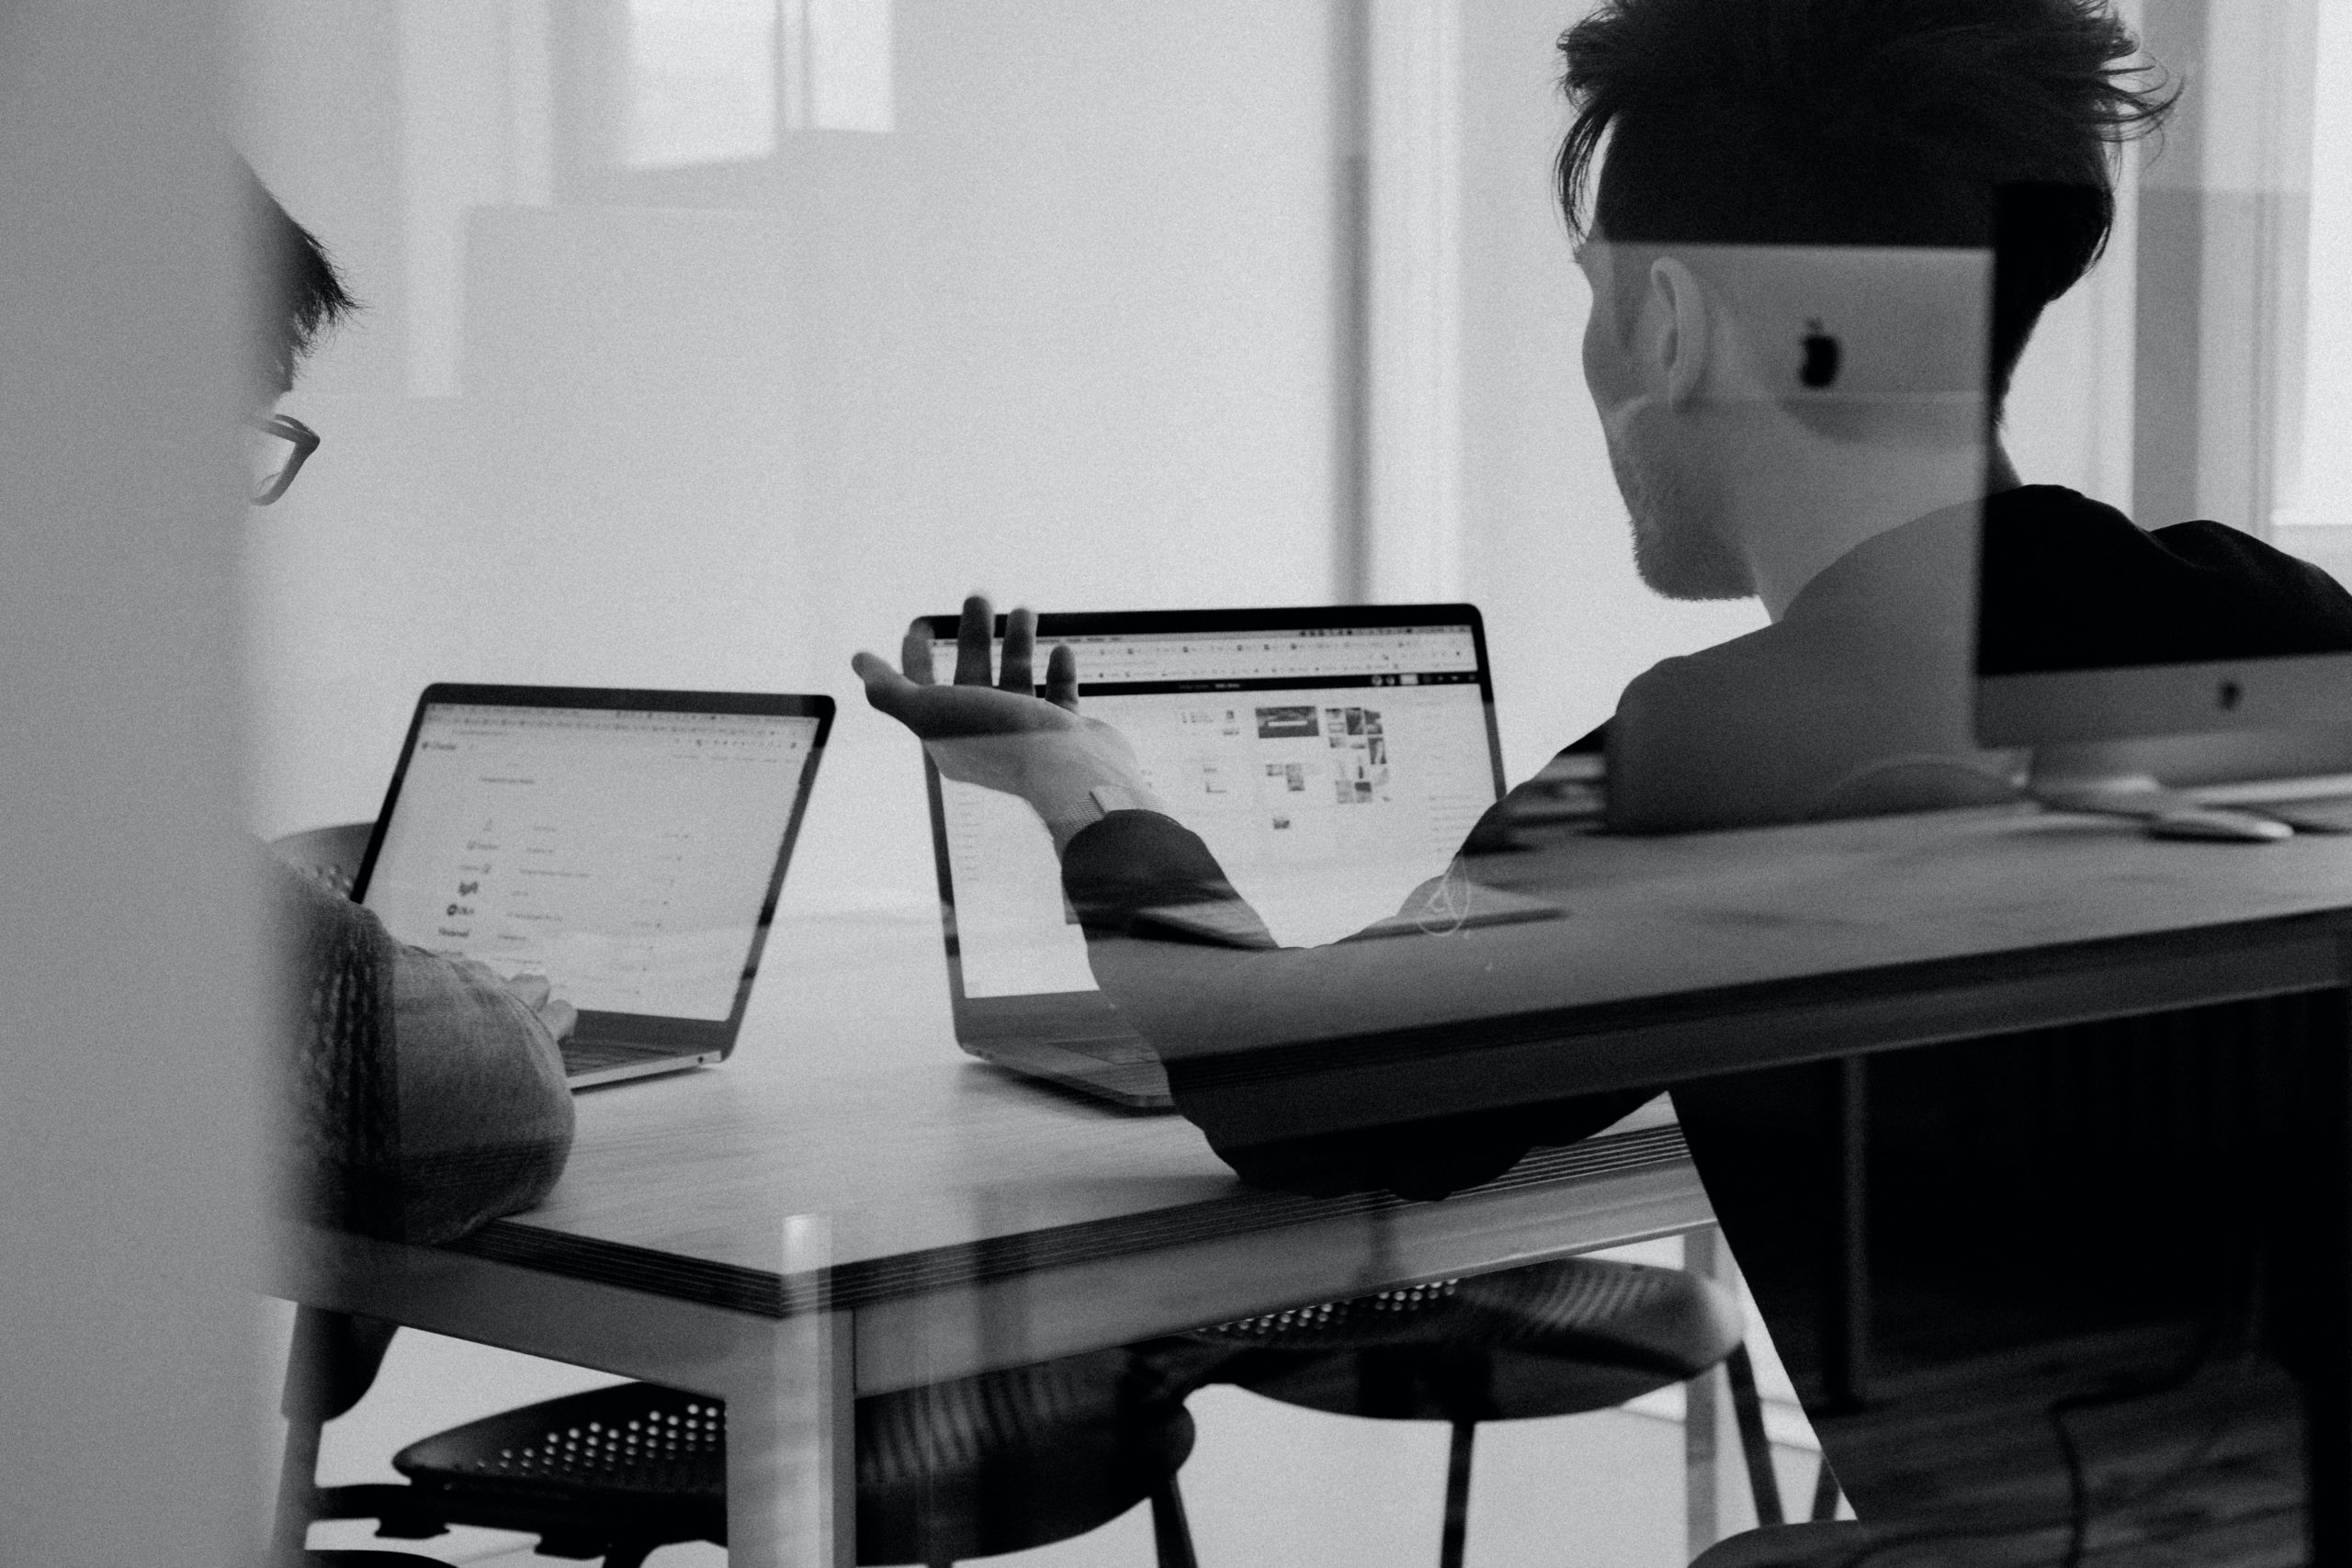 Two people working in front of computers